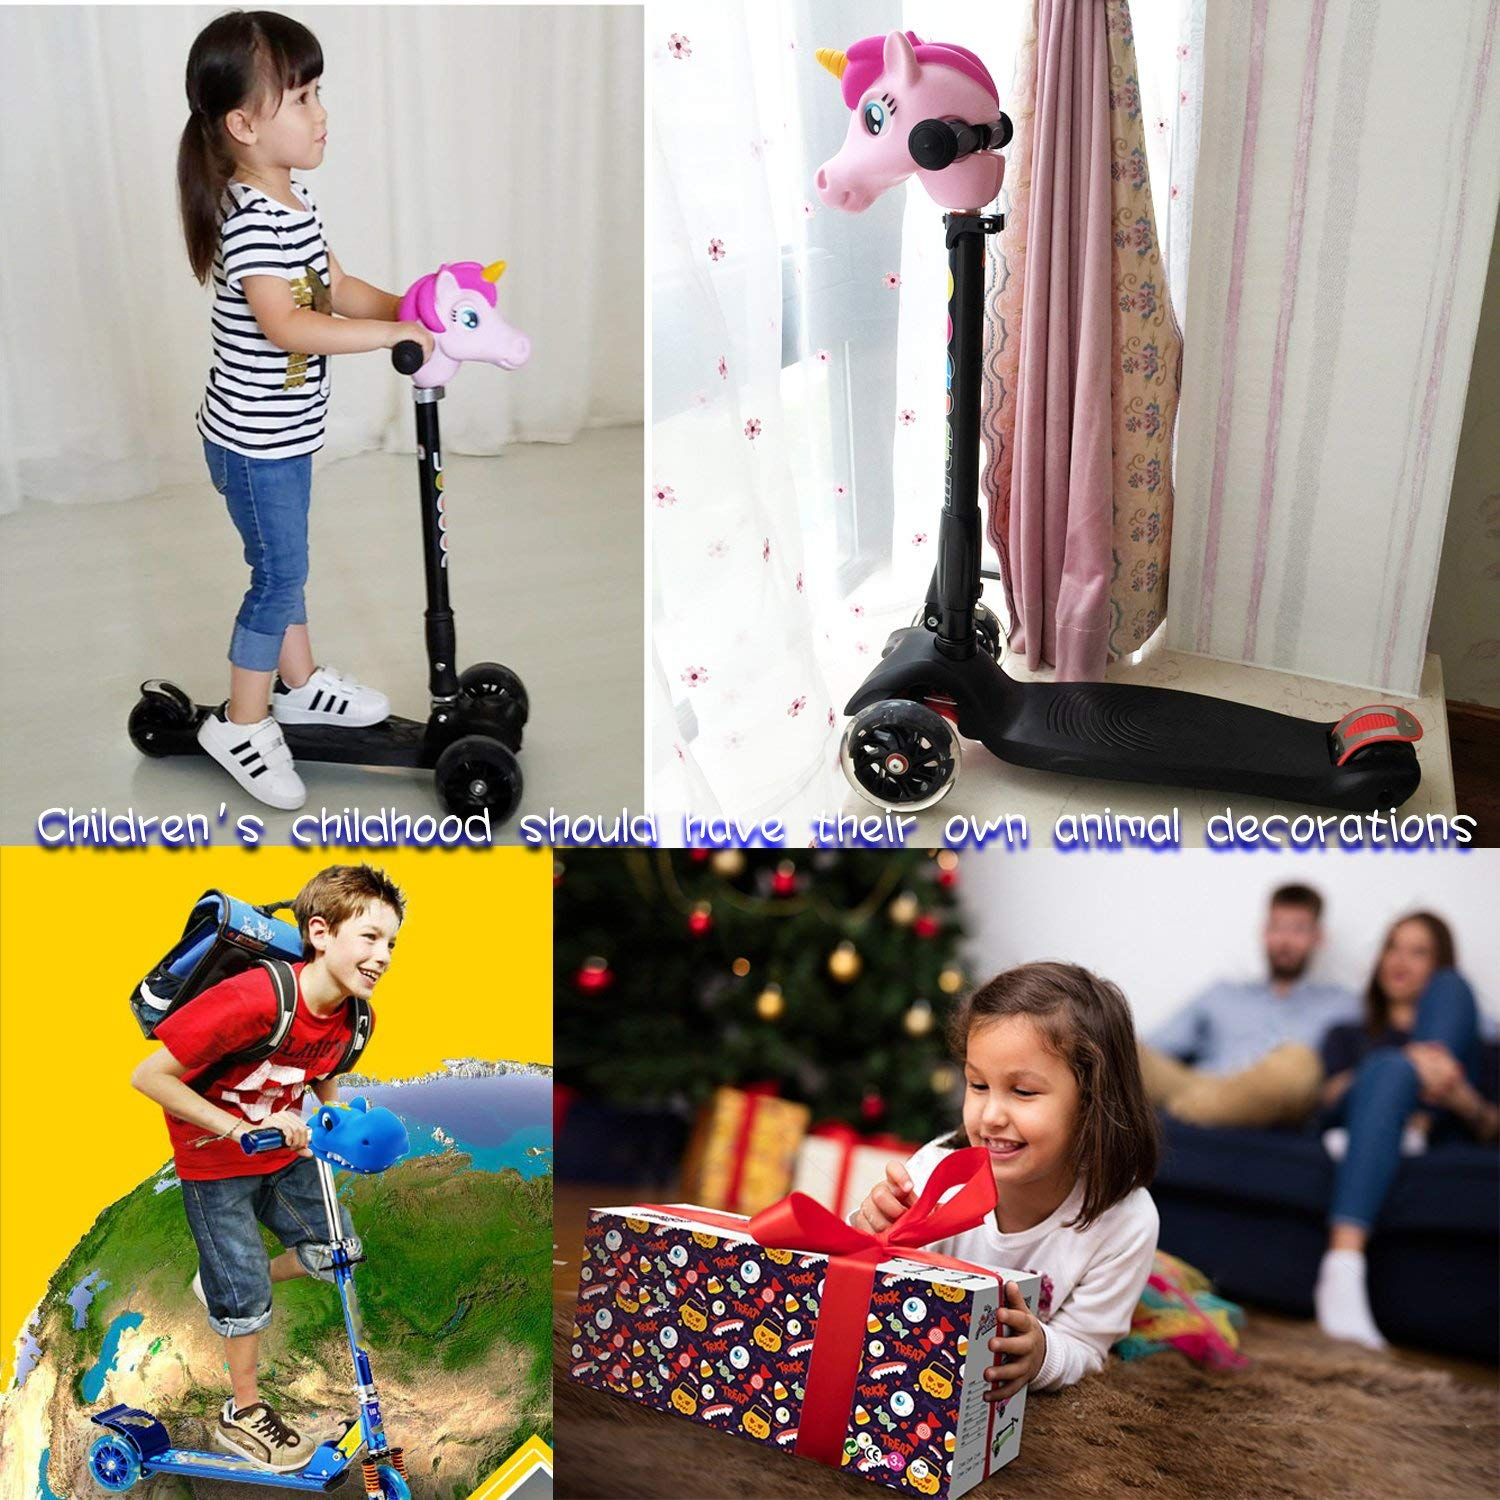 Scooter Accessories Unicorn Head for Toddlers Kids Girls,Pink Unicorn Horse Head Fit Micro Mini T-Bar Kick Scooter Bike